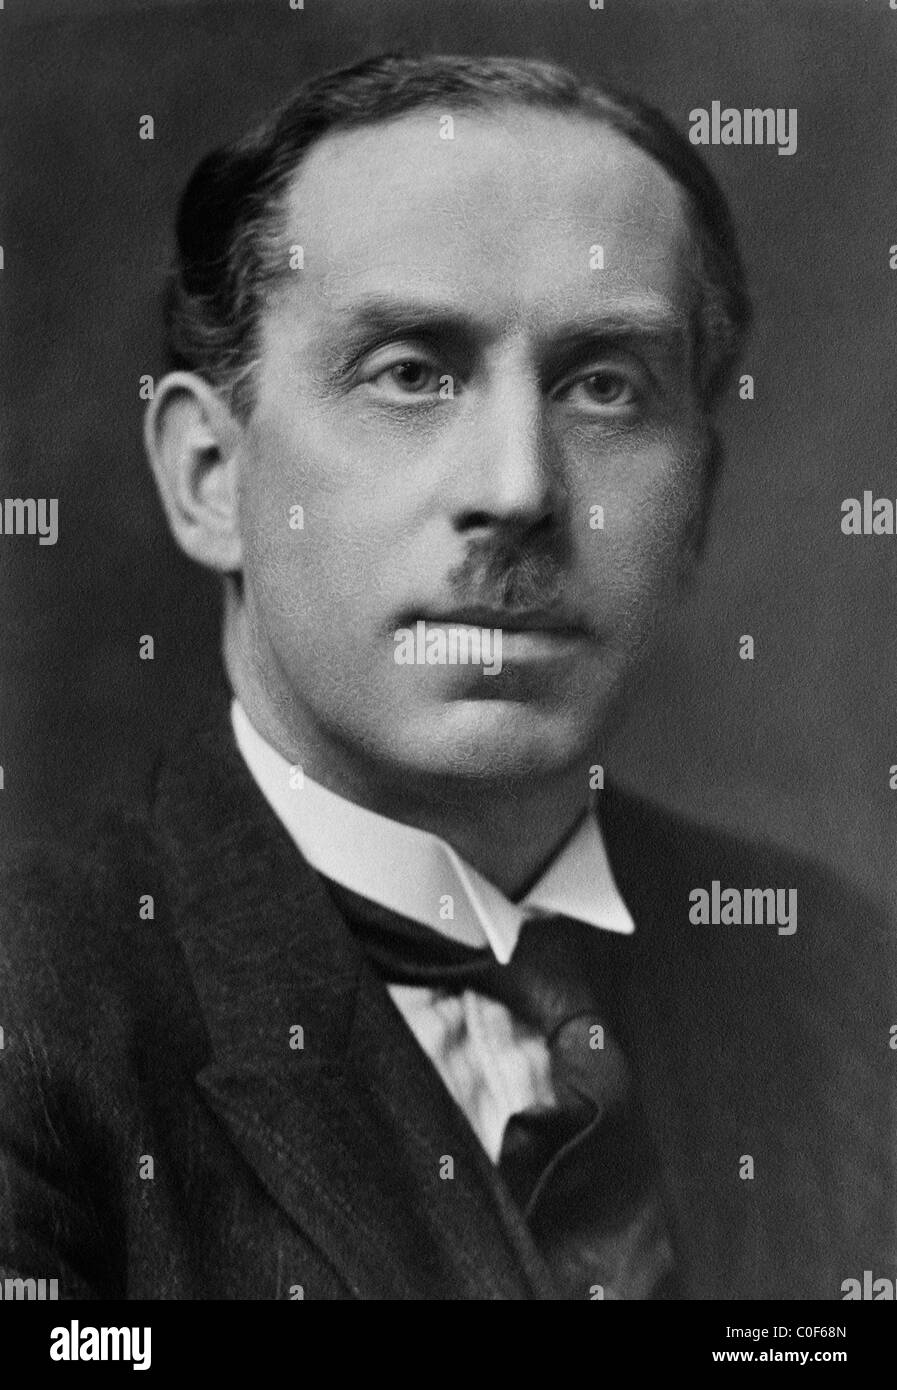 English physicist Charles Glover Barkla (1877 - 1944) - winner of the Nobel Prize in Physics in 1917 for his work - Stock Image